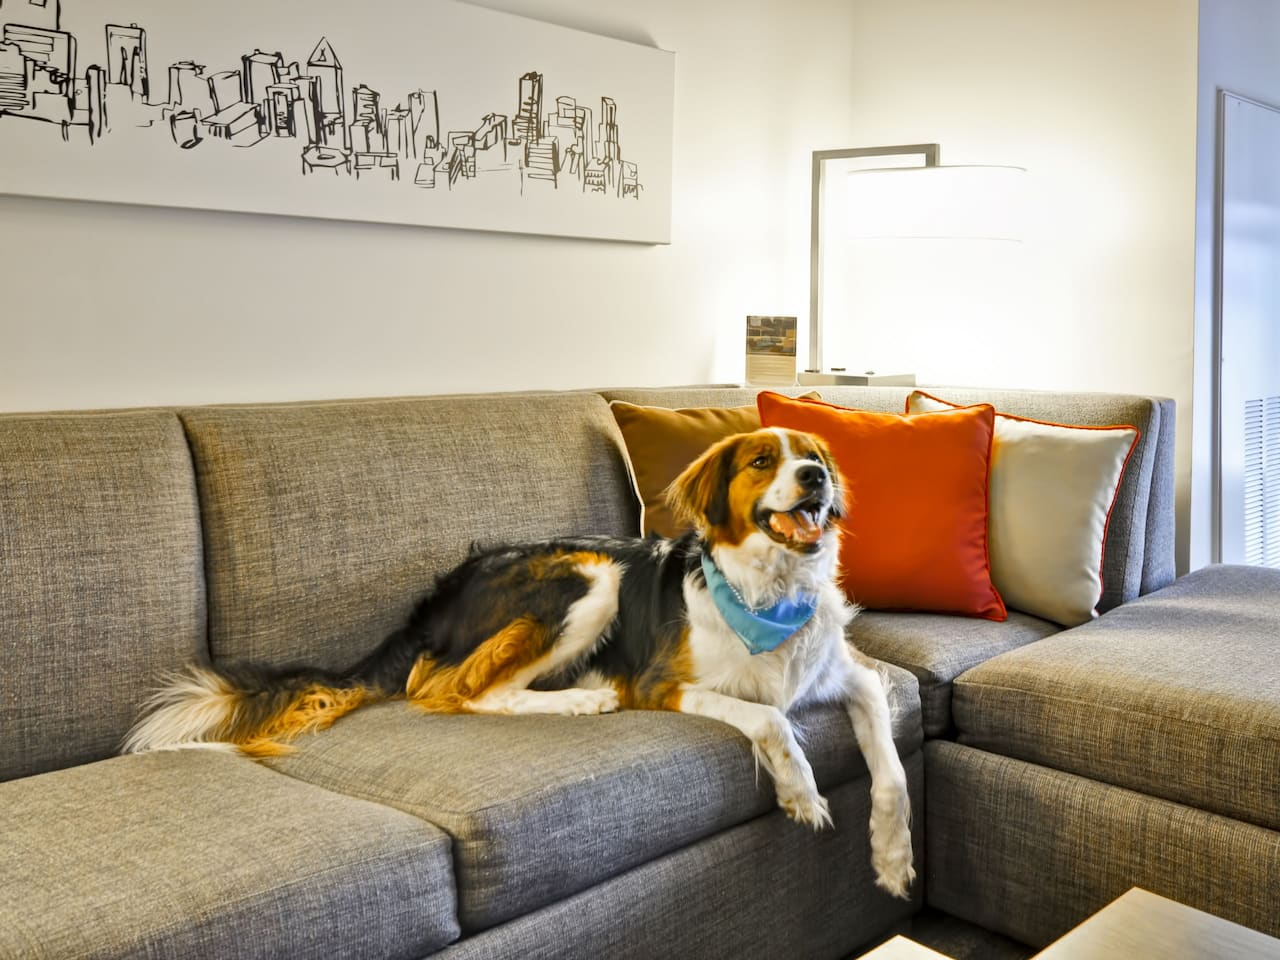 Dogs are welcome at our pet-friendly hotel in Northwest Austin